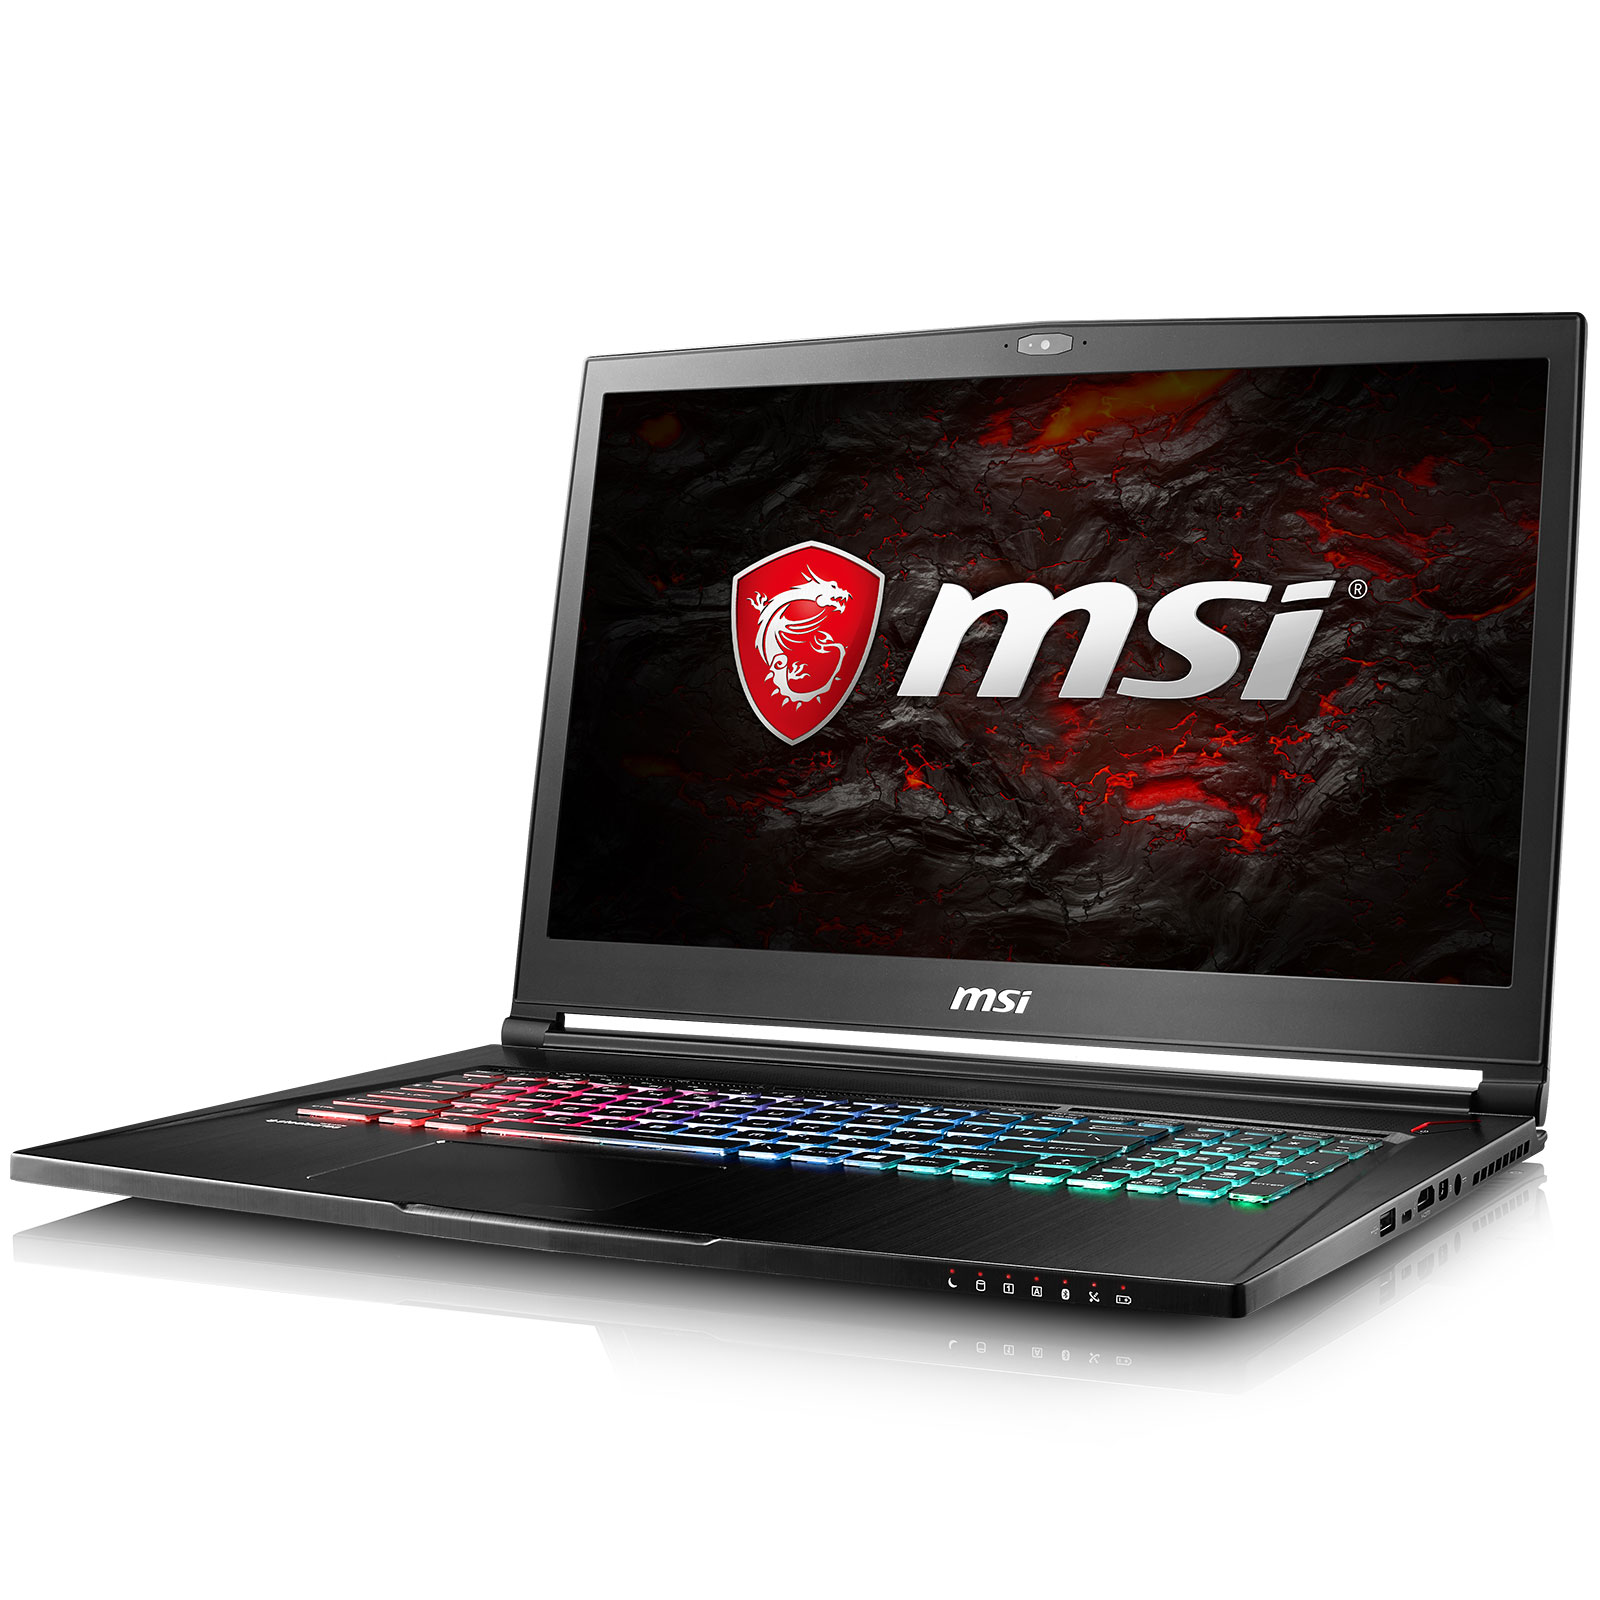 MSI 9S7-17B312-013 - PC portable MSI - Cybertek.fr - 4